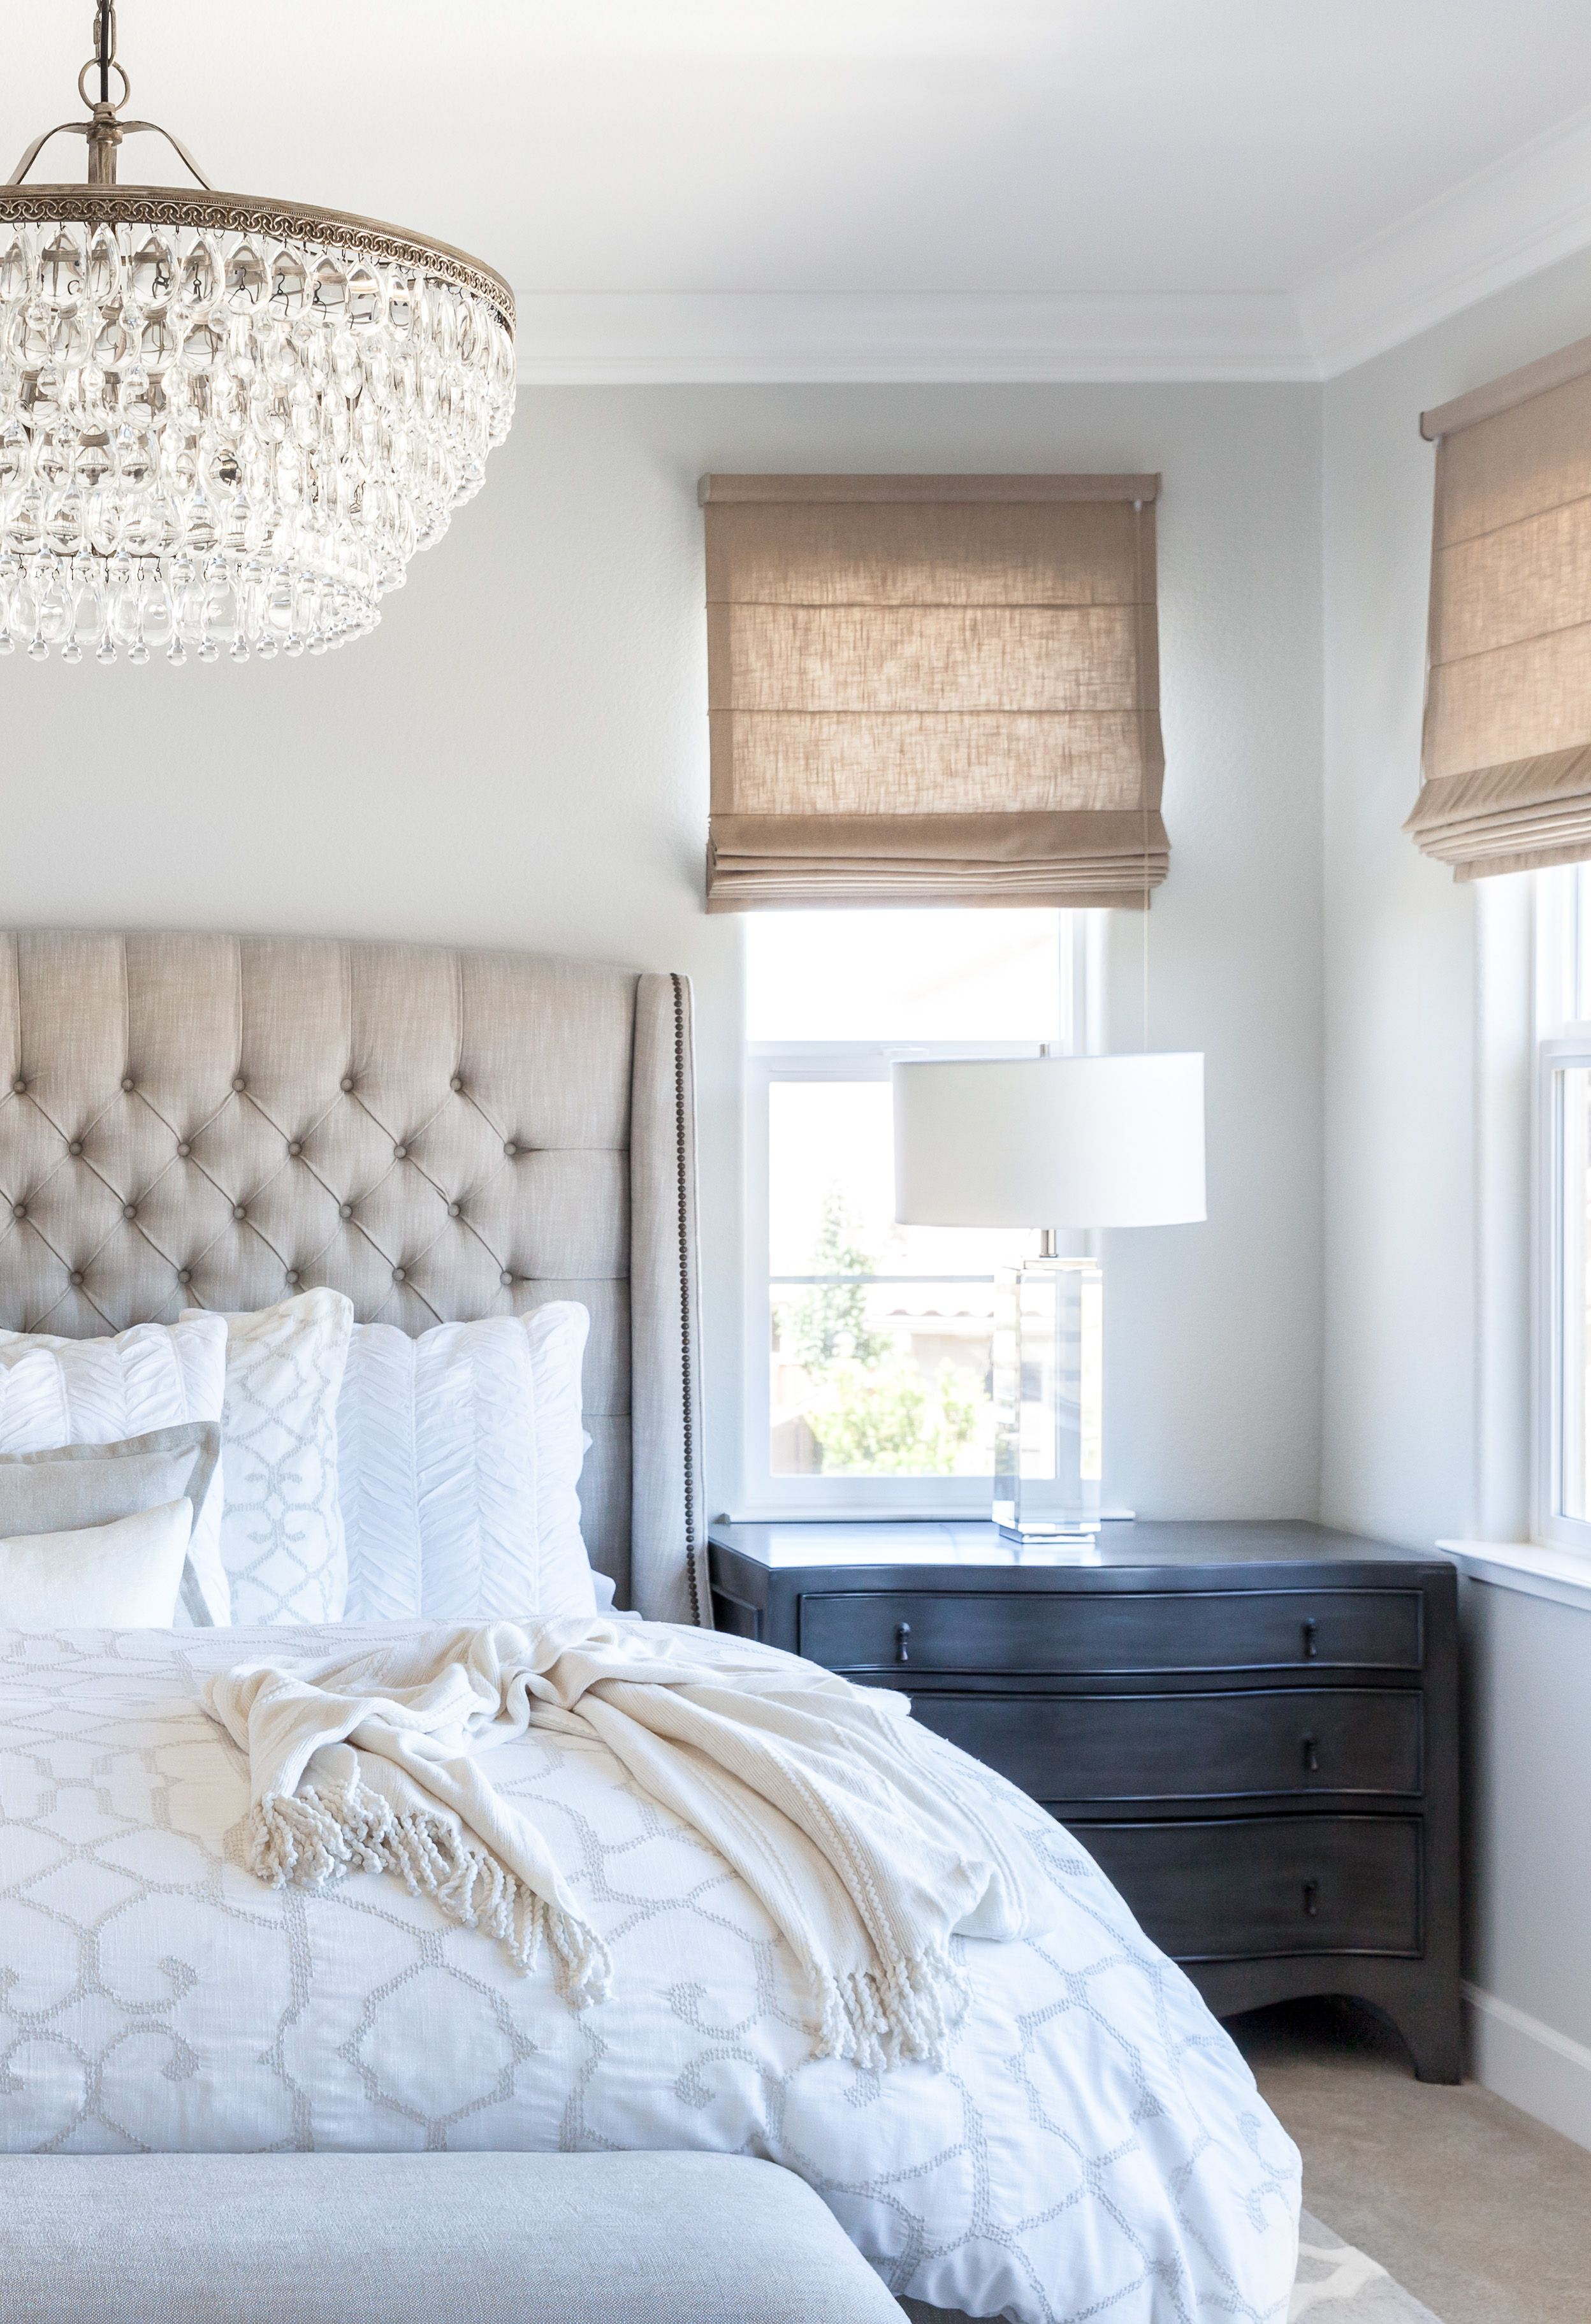 Master bedroom calming master bedroom linen bed gray walls tufted headboard restoration Master bedroom bed linens